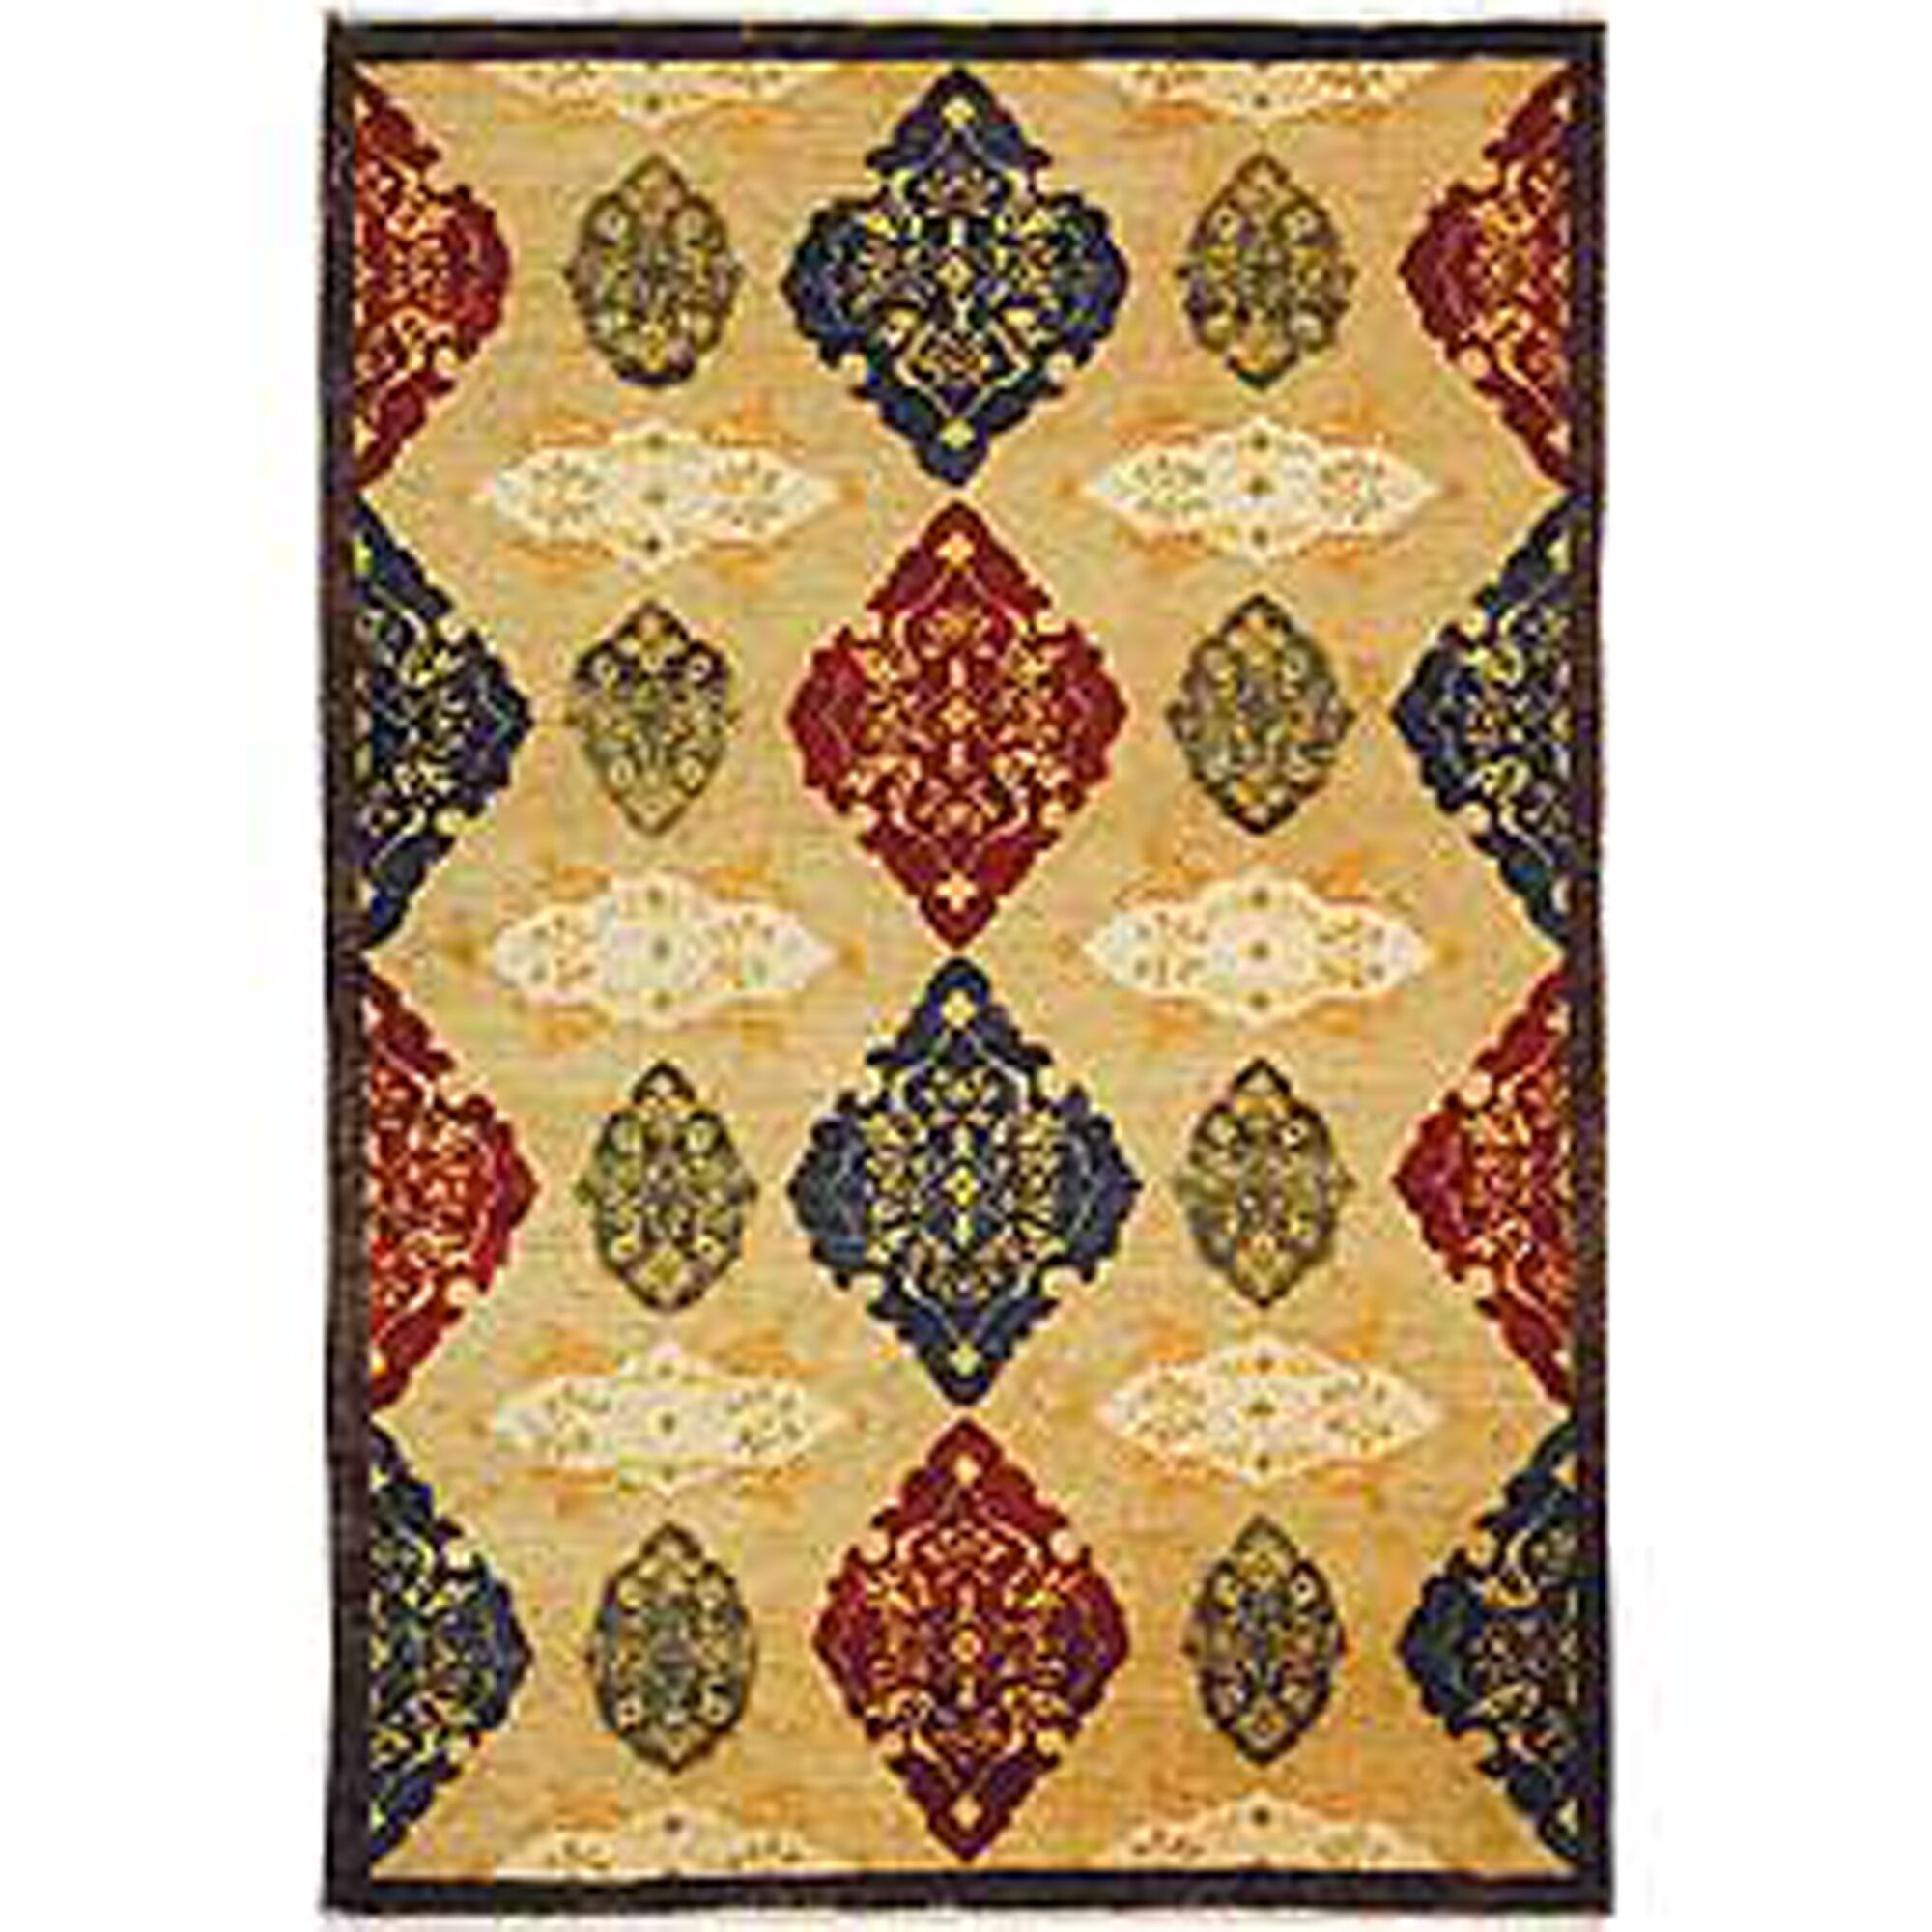 Dietz Tibetan Hand Knotted Wool Beige Area Rug Rug Size: Rectangle 8' x 10'